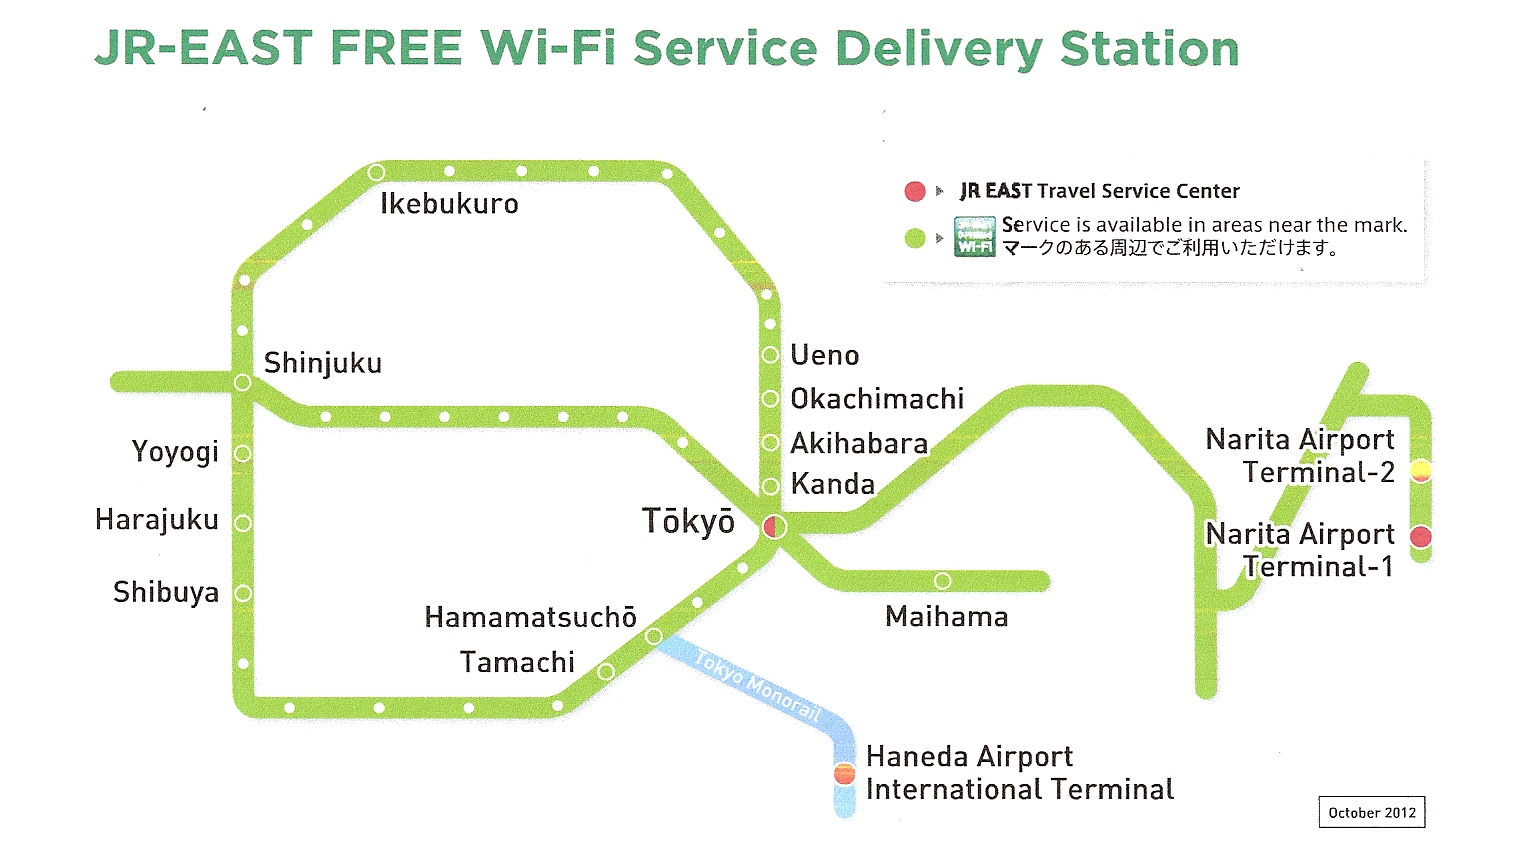 Map of JR East WiFi Service Delivery Area